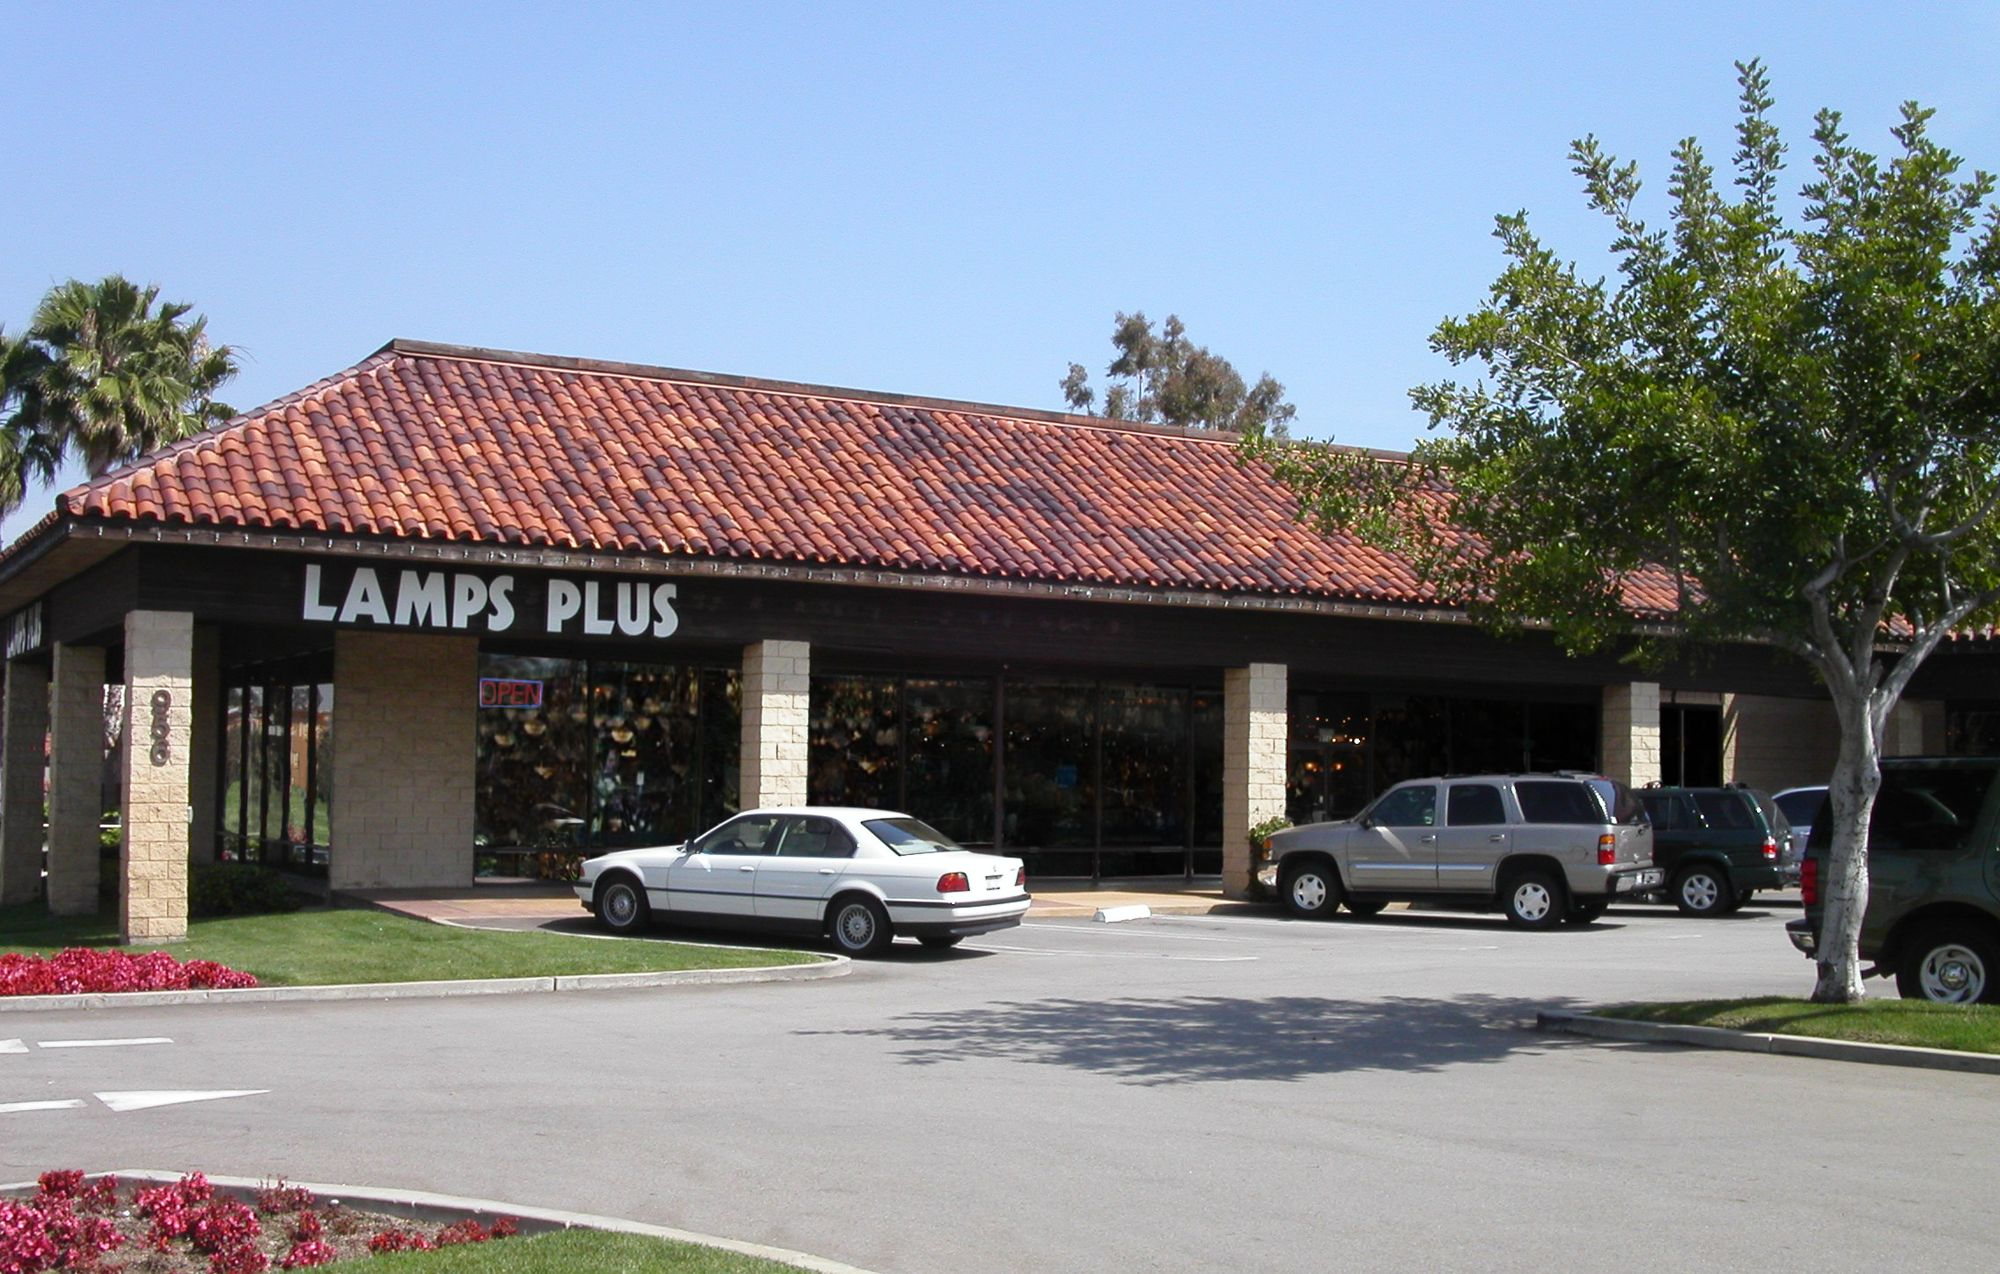 Lamps Plus Brea Ca Imperial Hwy 92821 Orange County Lighting Store Pendant Decorative Electrical Wiring Manager Robert Berge